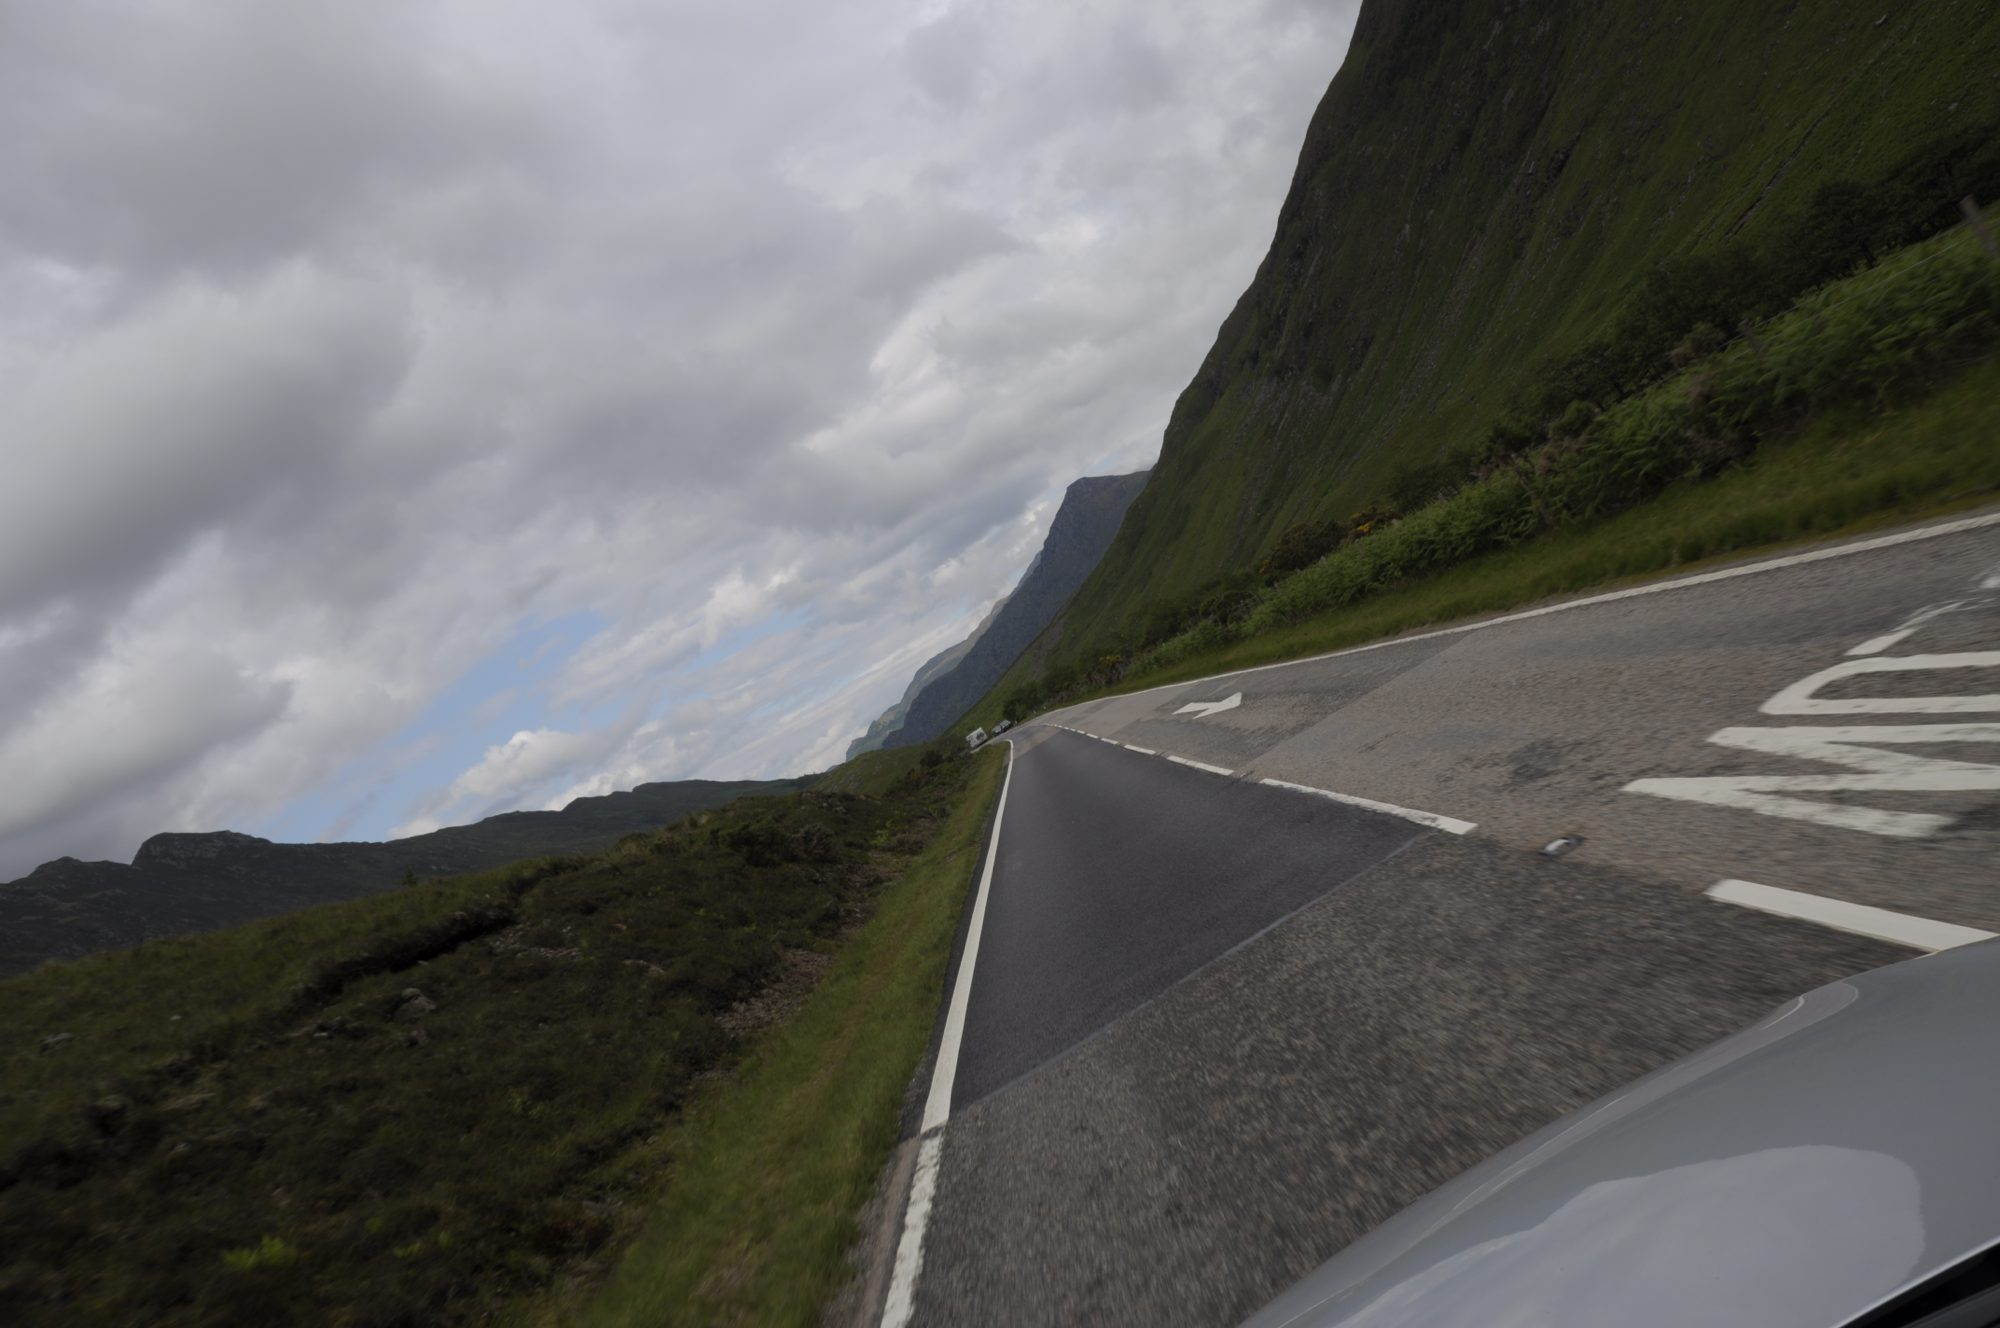 Juni 2011 - On the roads in Scotland.